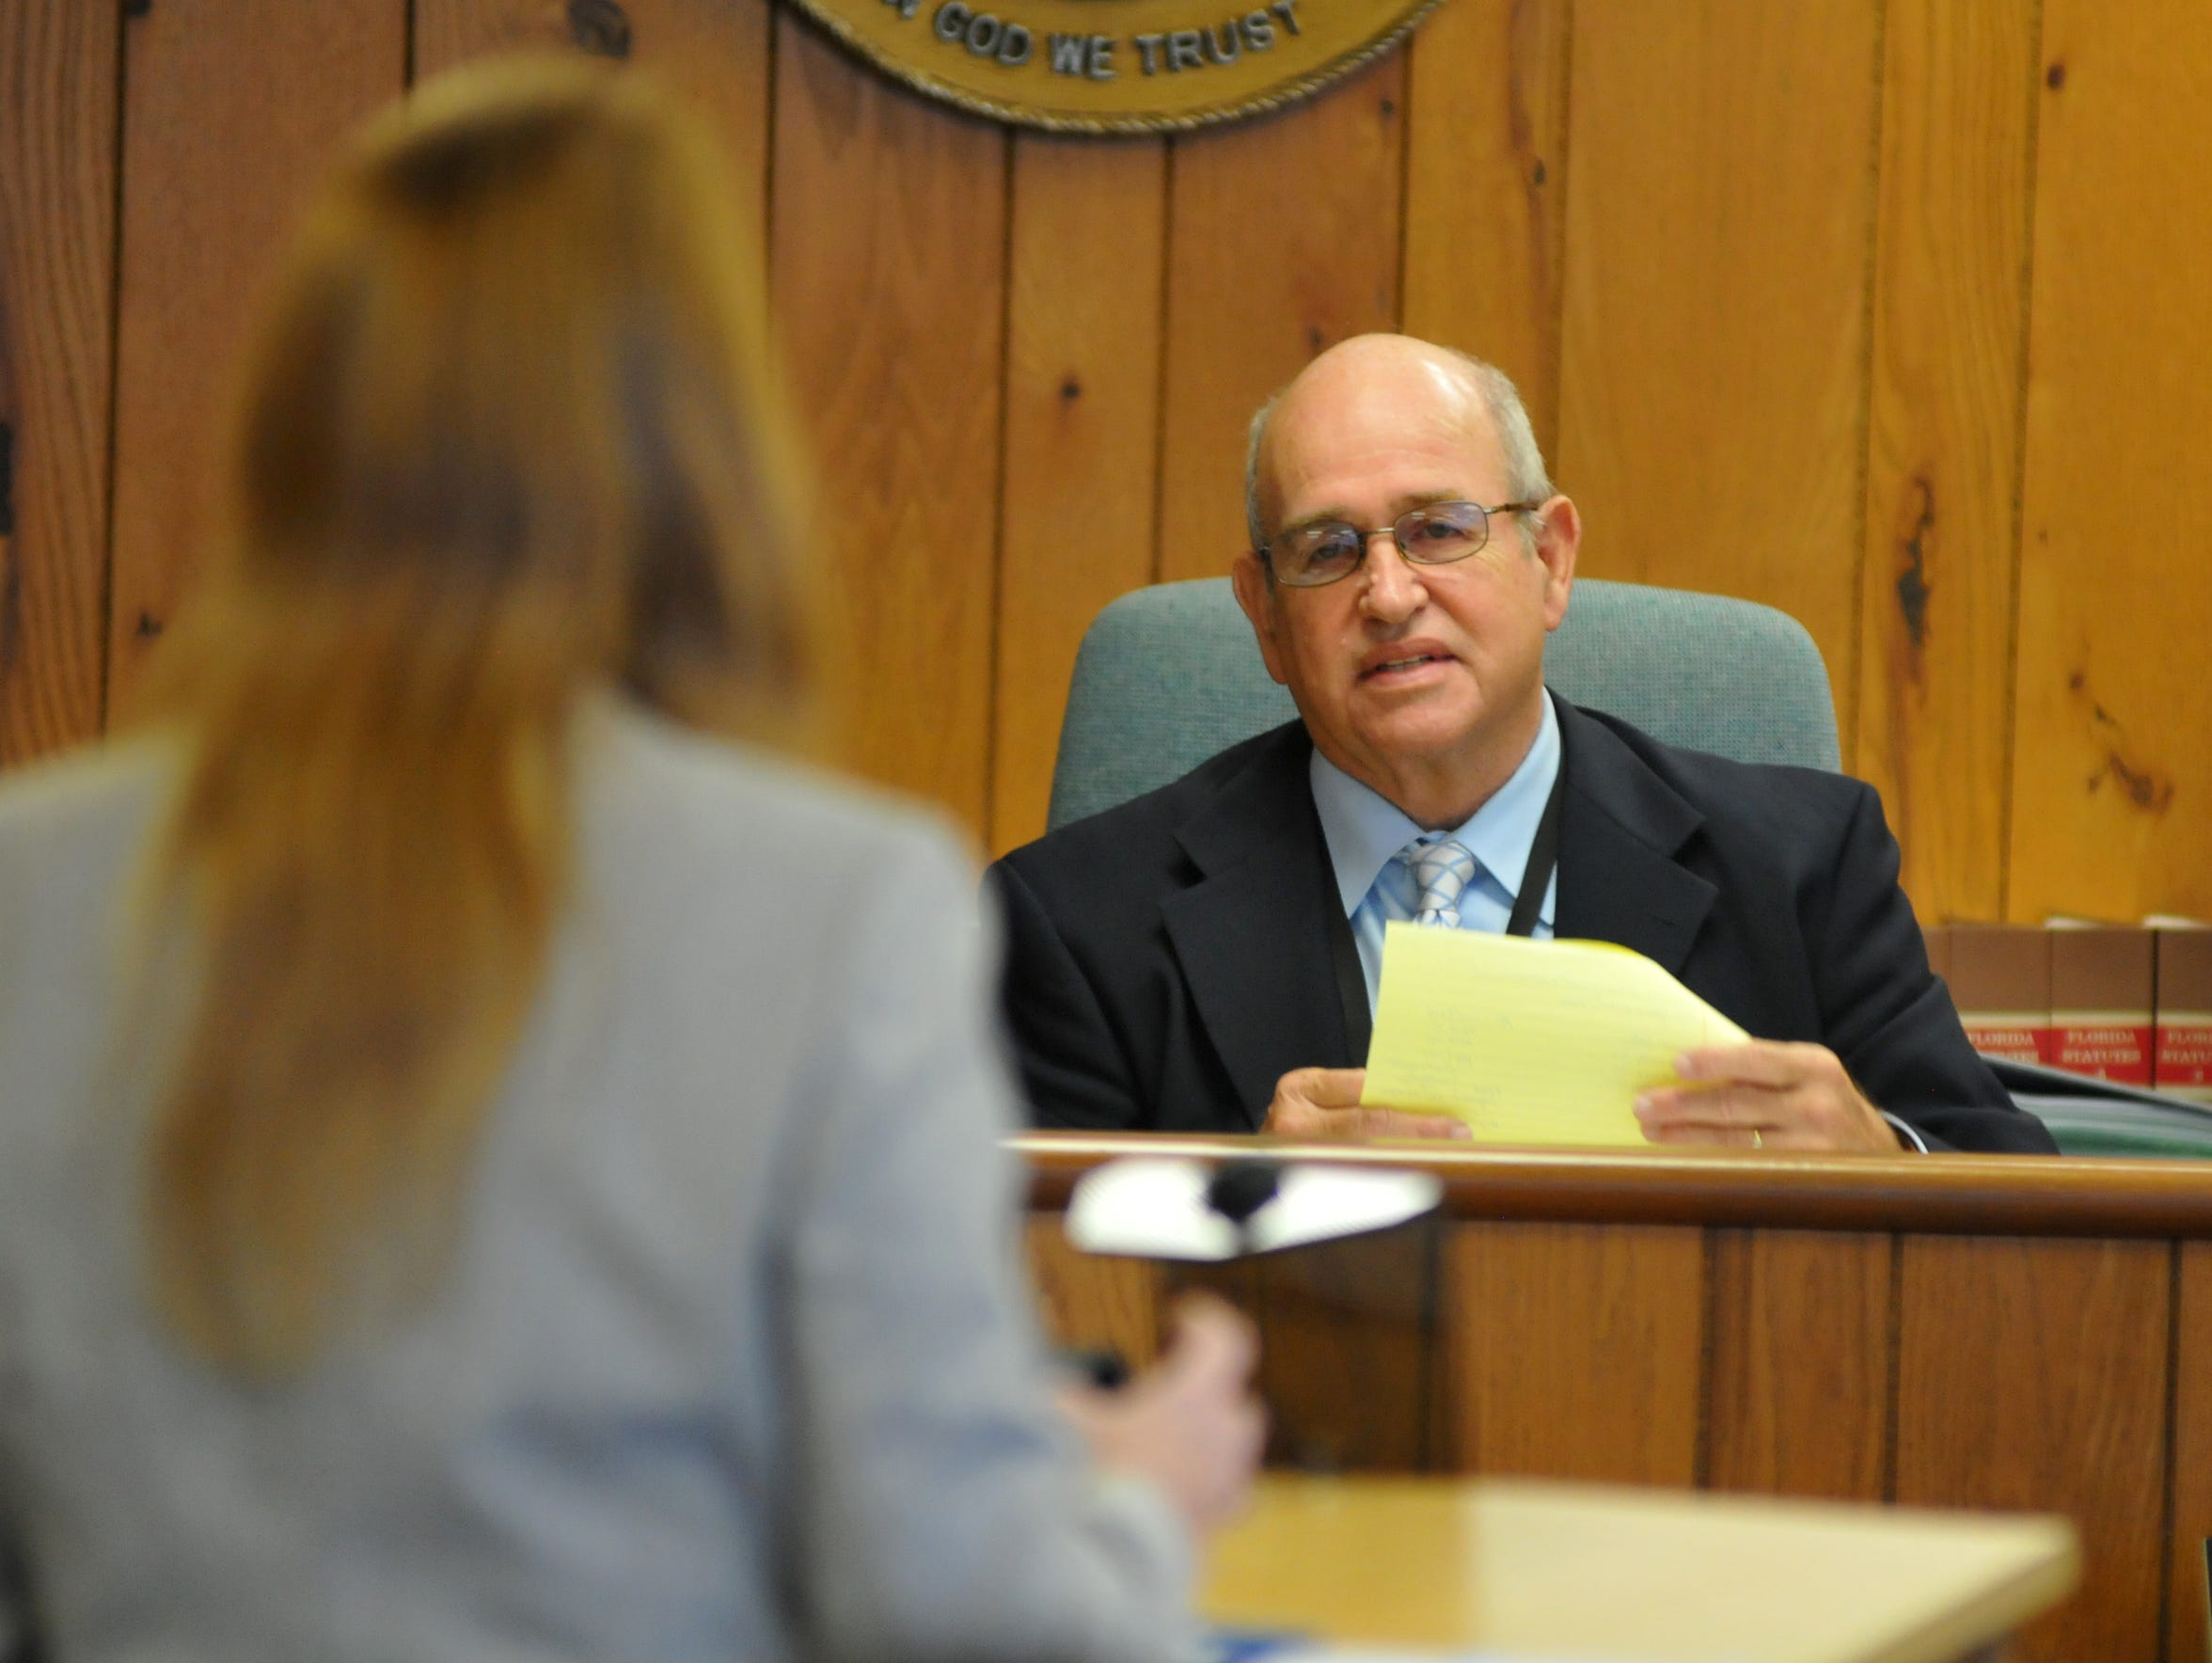 A hearing was held Friday morning at the Titusville